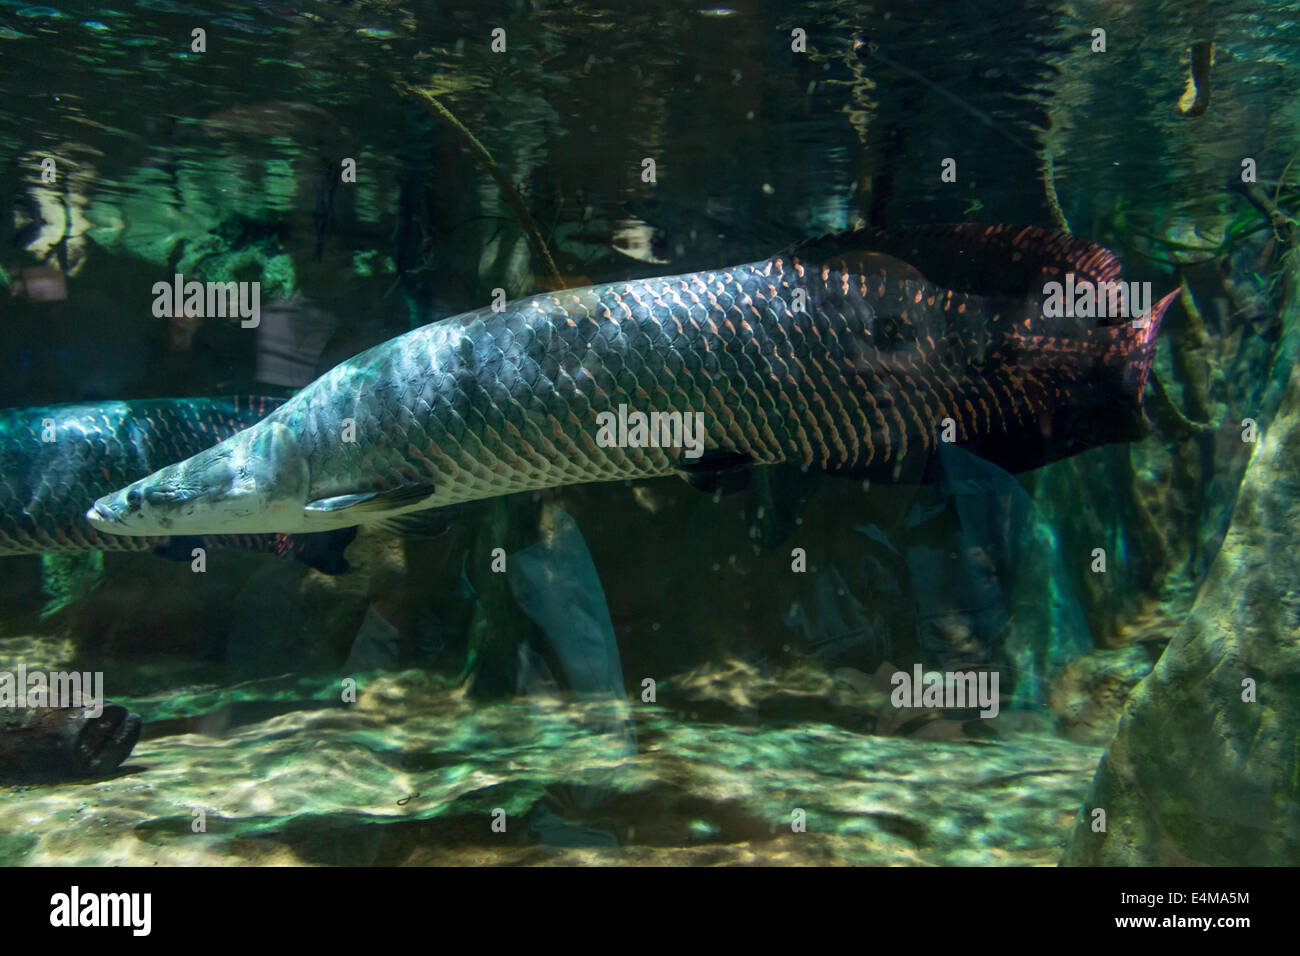 Arapaima Aquarium | Arapaima Stock Photos Arapaima Stock Images Alamy